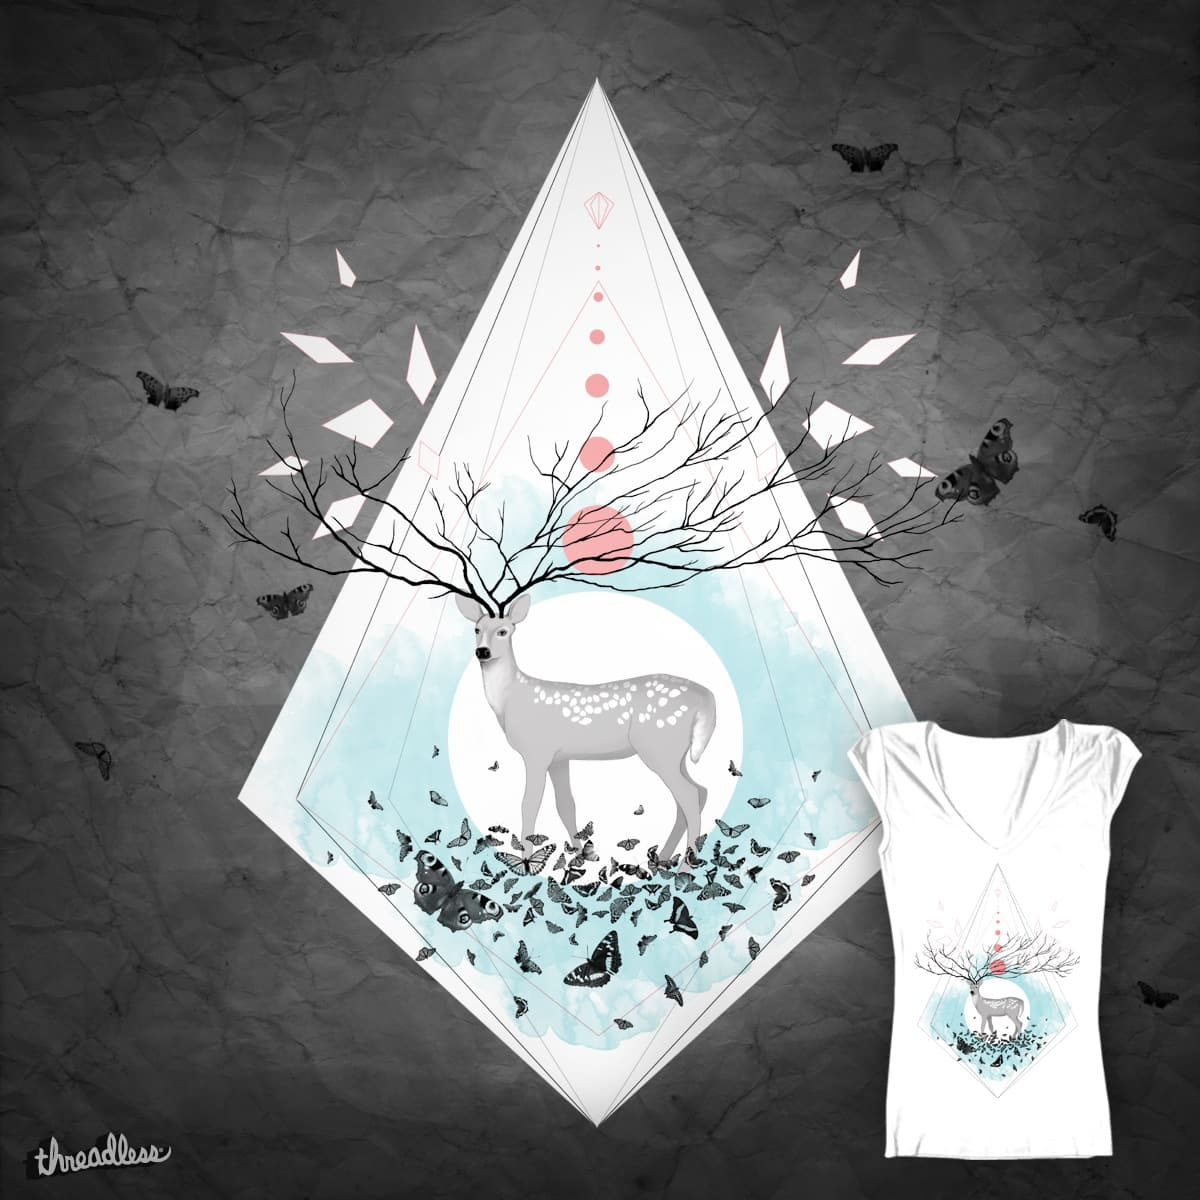 light by baghime on Threadless